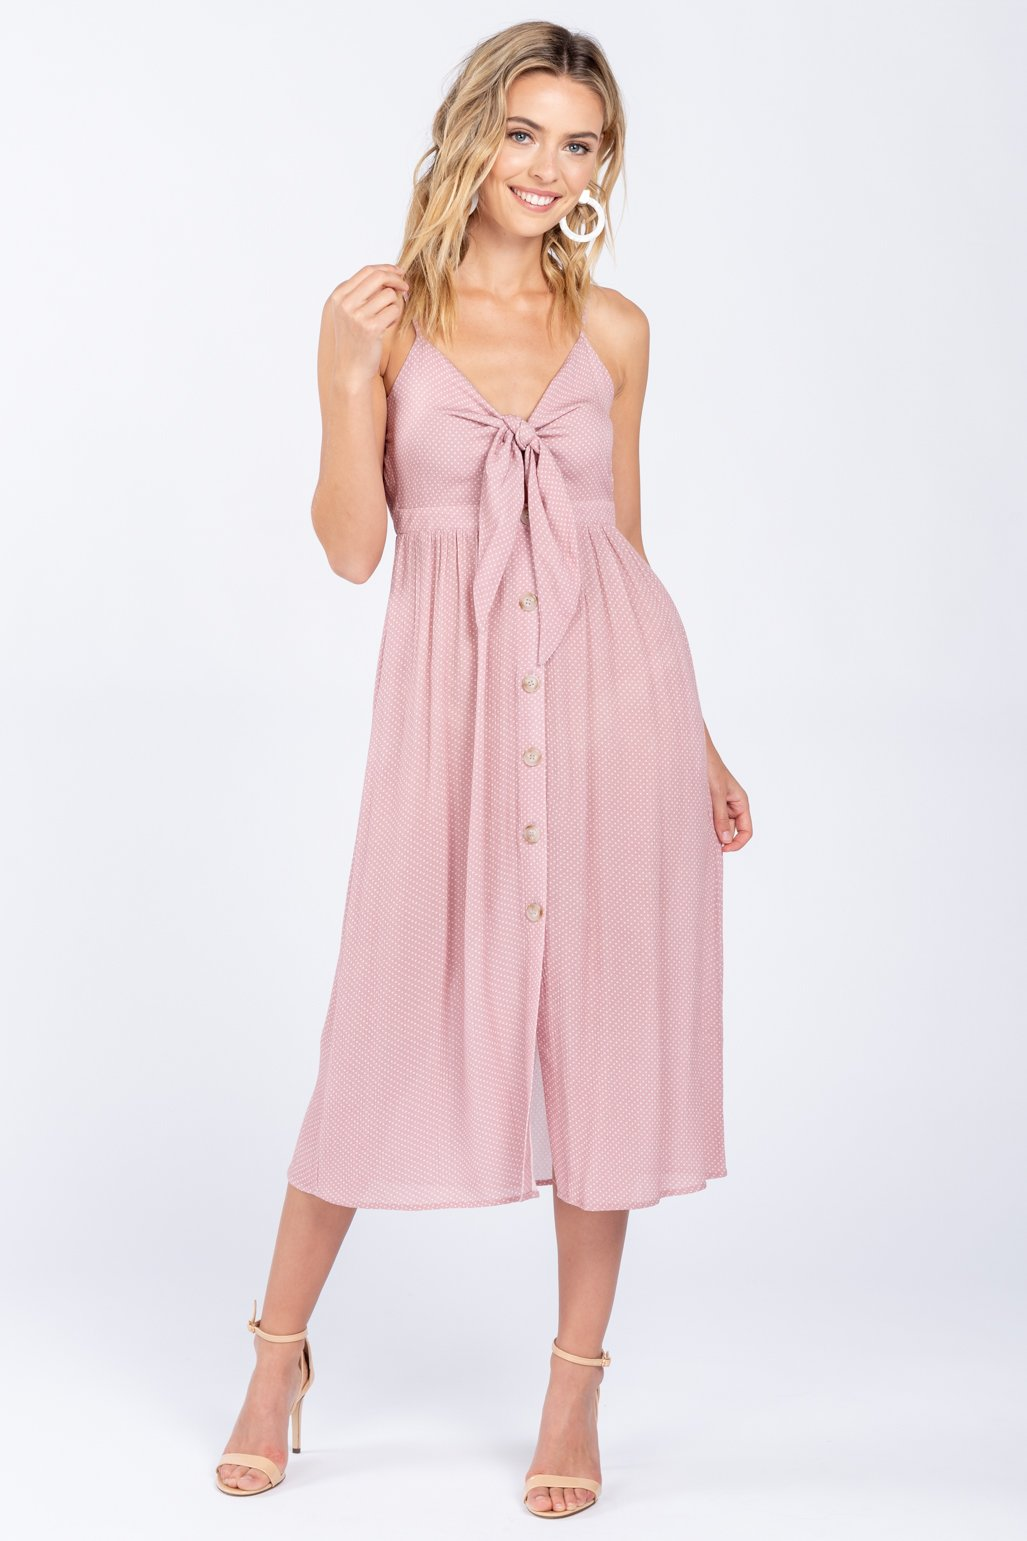 """KEEP IT CUTE"" MIDI DRESS"